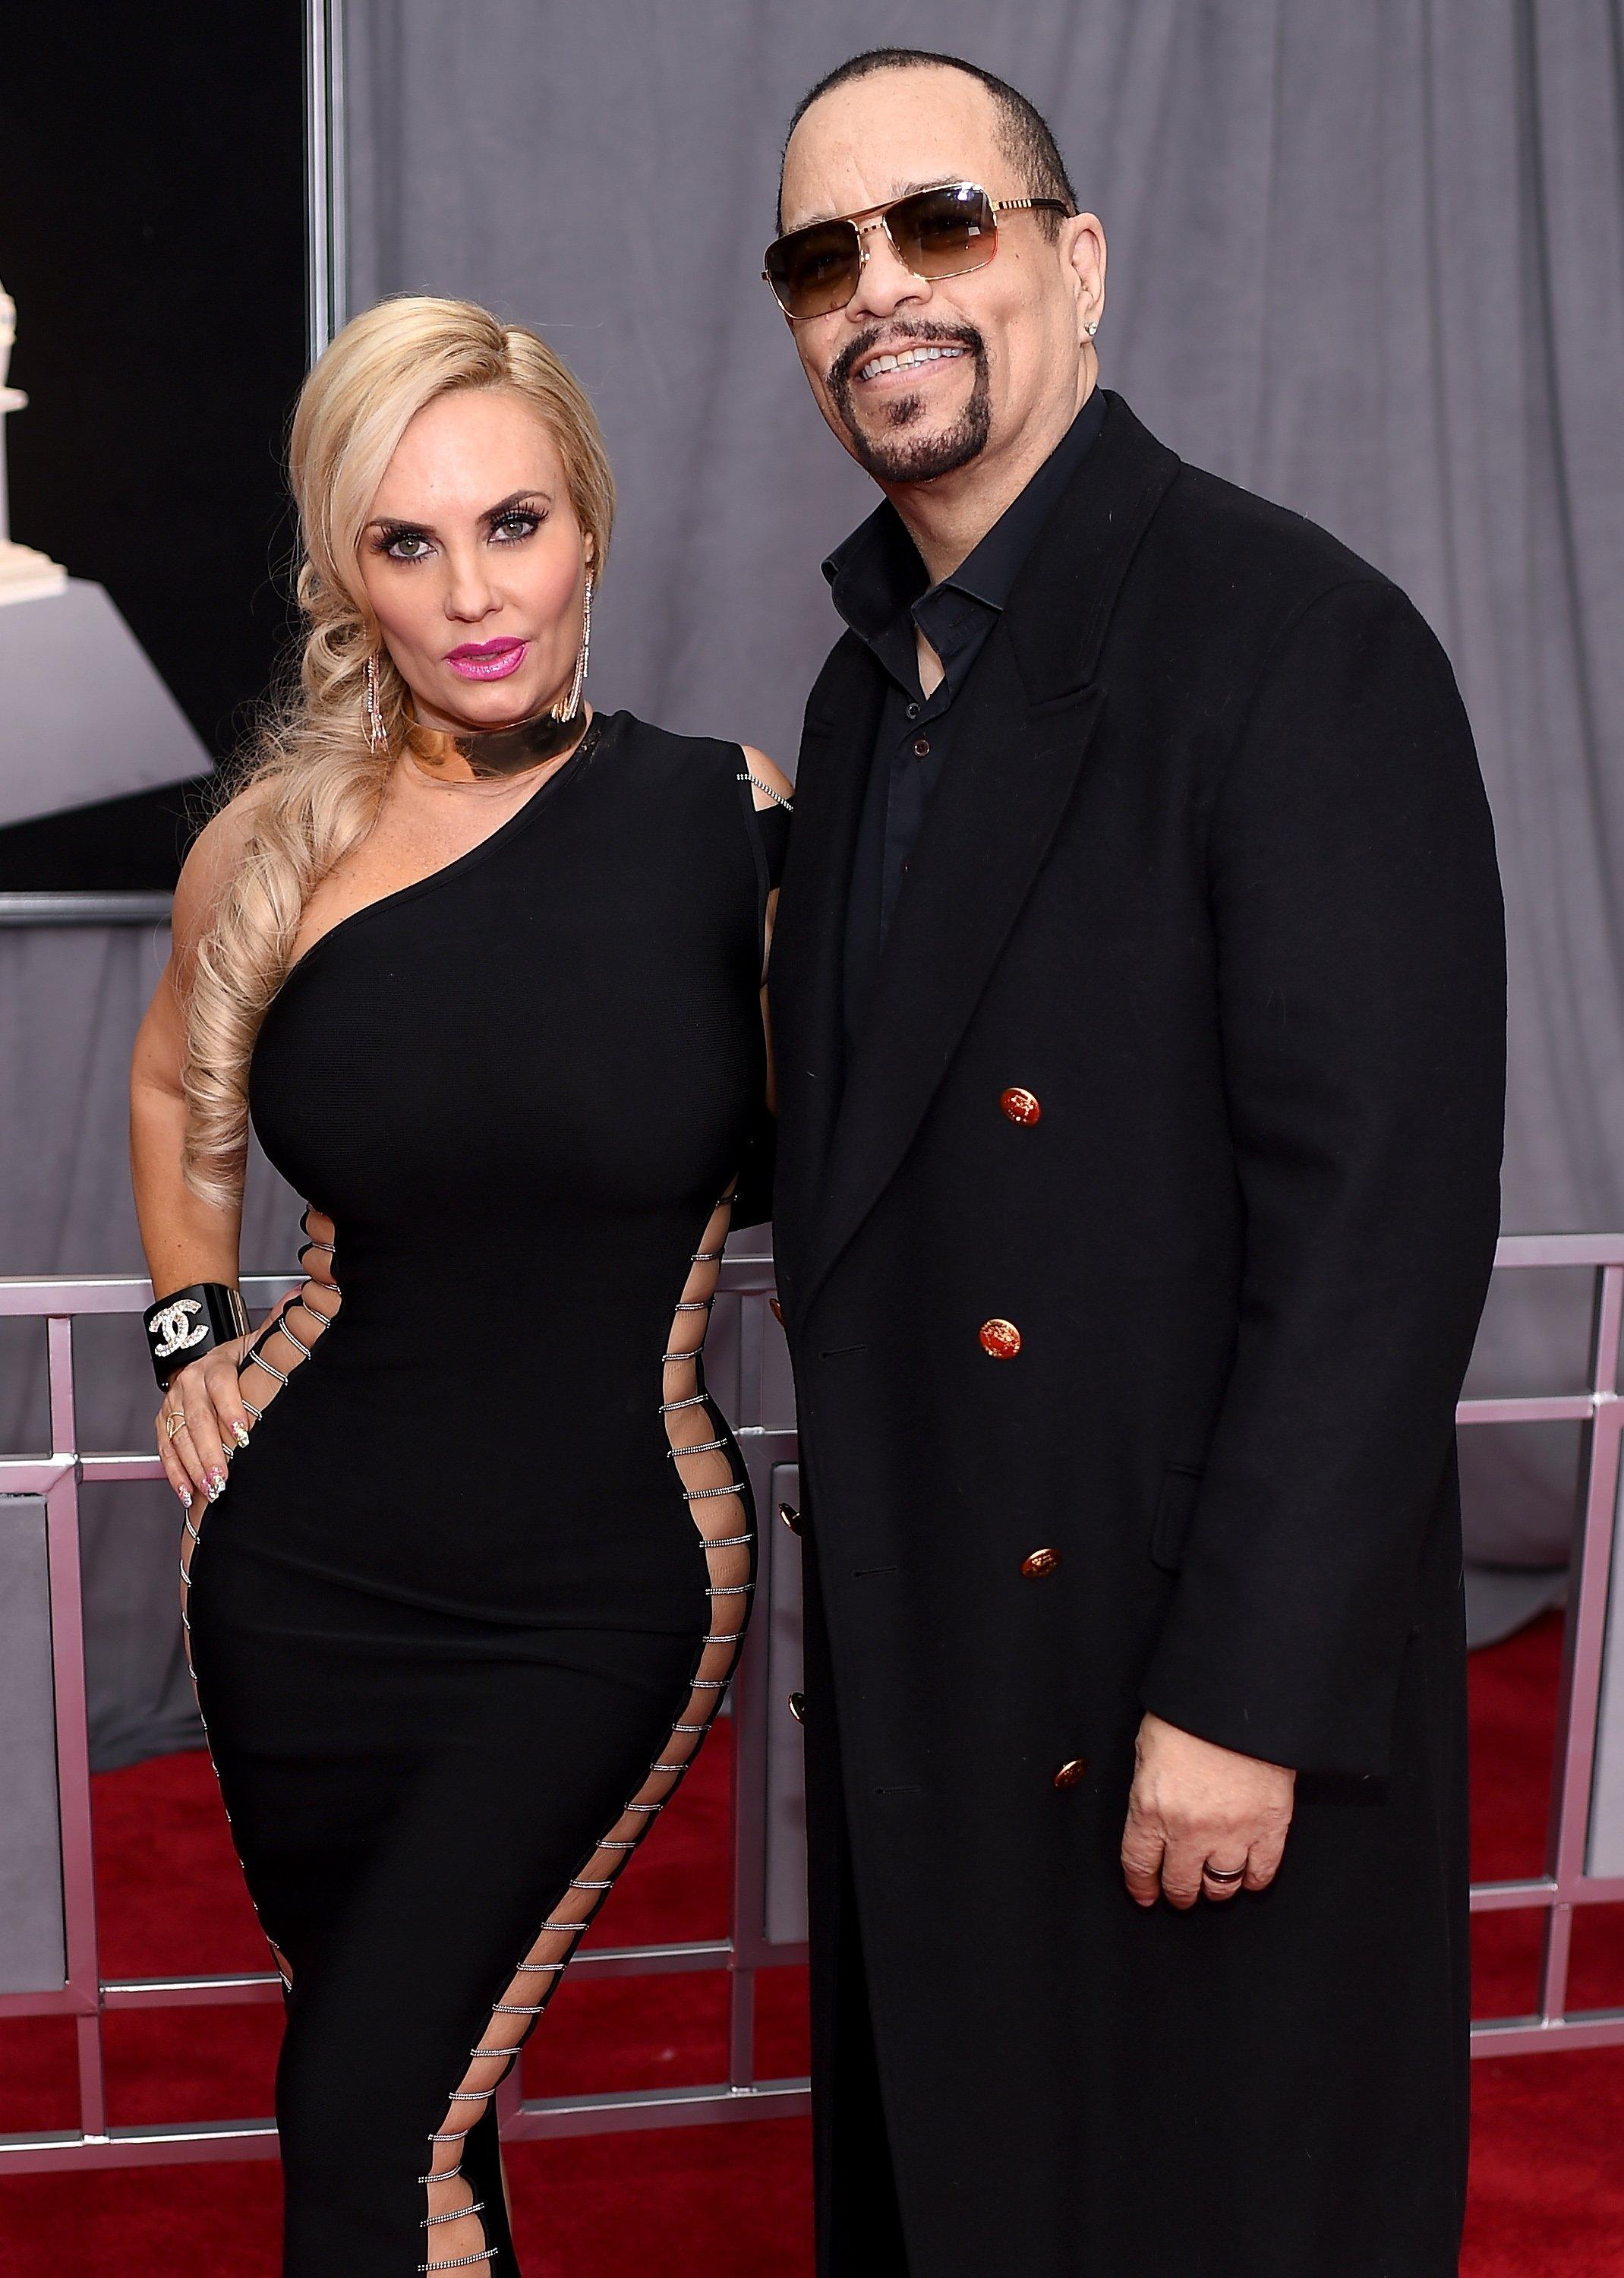 Coco Austin and Ice-T at the 60th Annual Grammy Awards at Madison Square Garden on January 28, 2018 in New York City | Photo: Getty Images